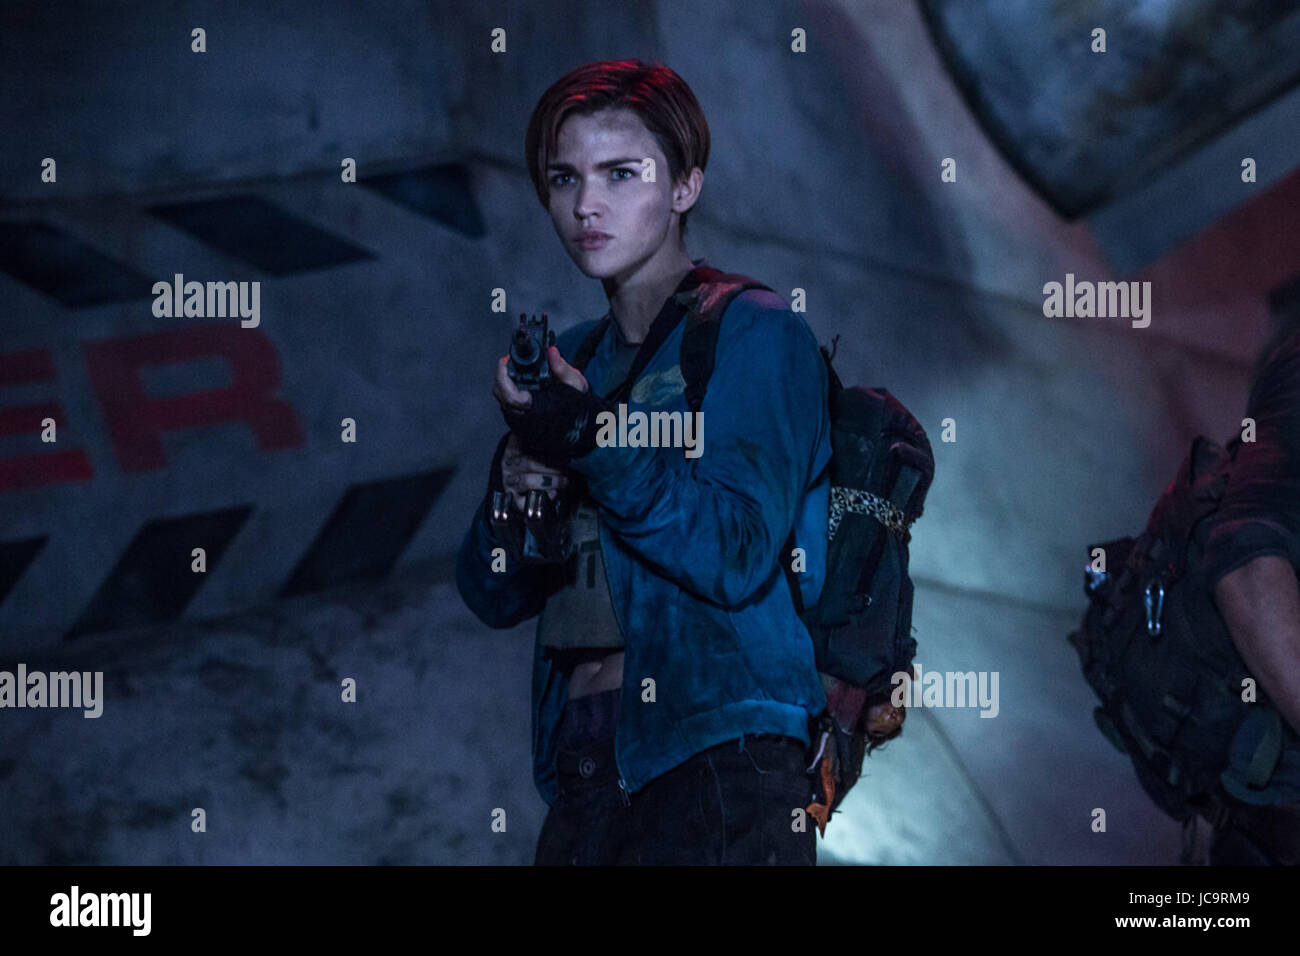 Ruby Rose Resident Evil: Ruby Rose Stock Photos & Ruby Rose Stock Images